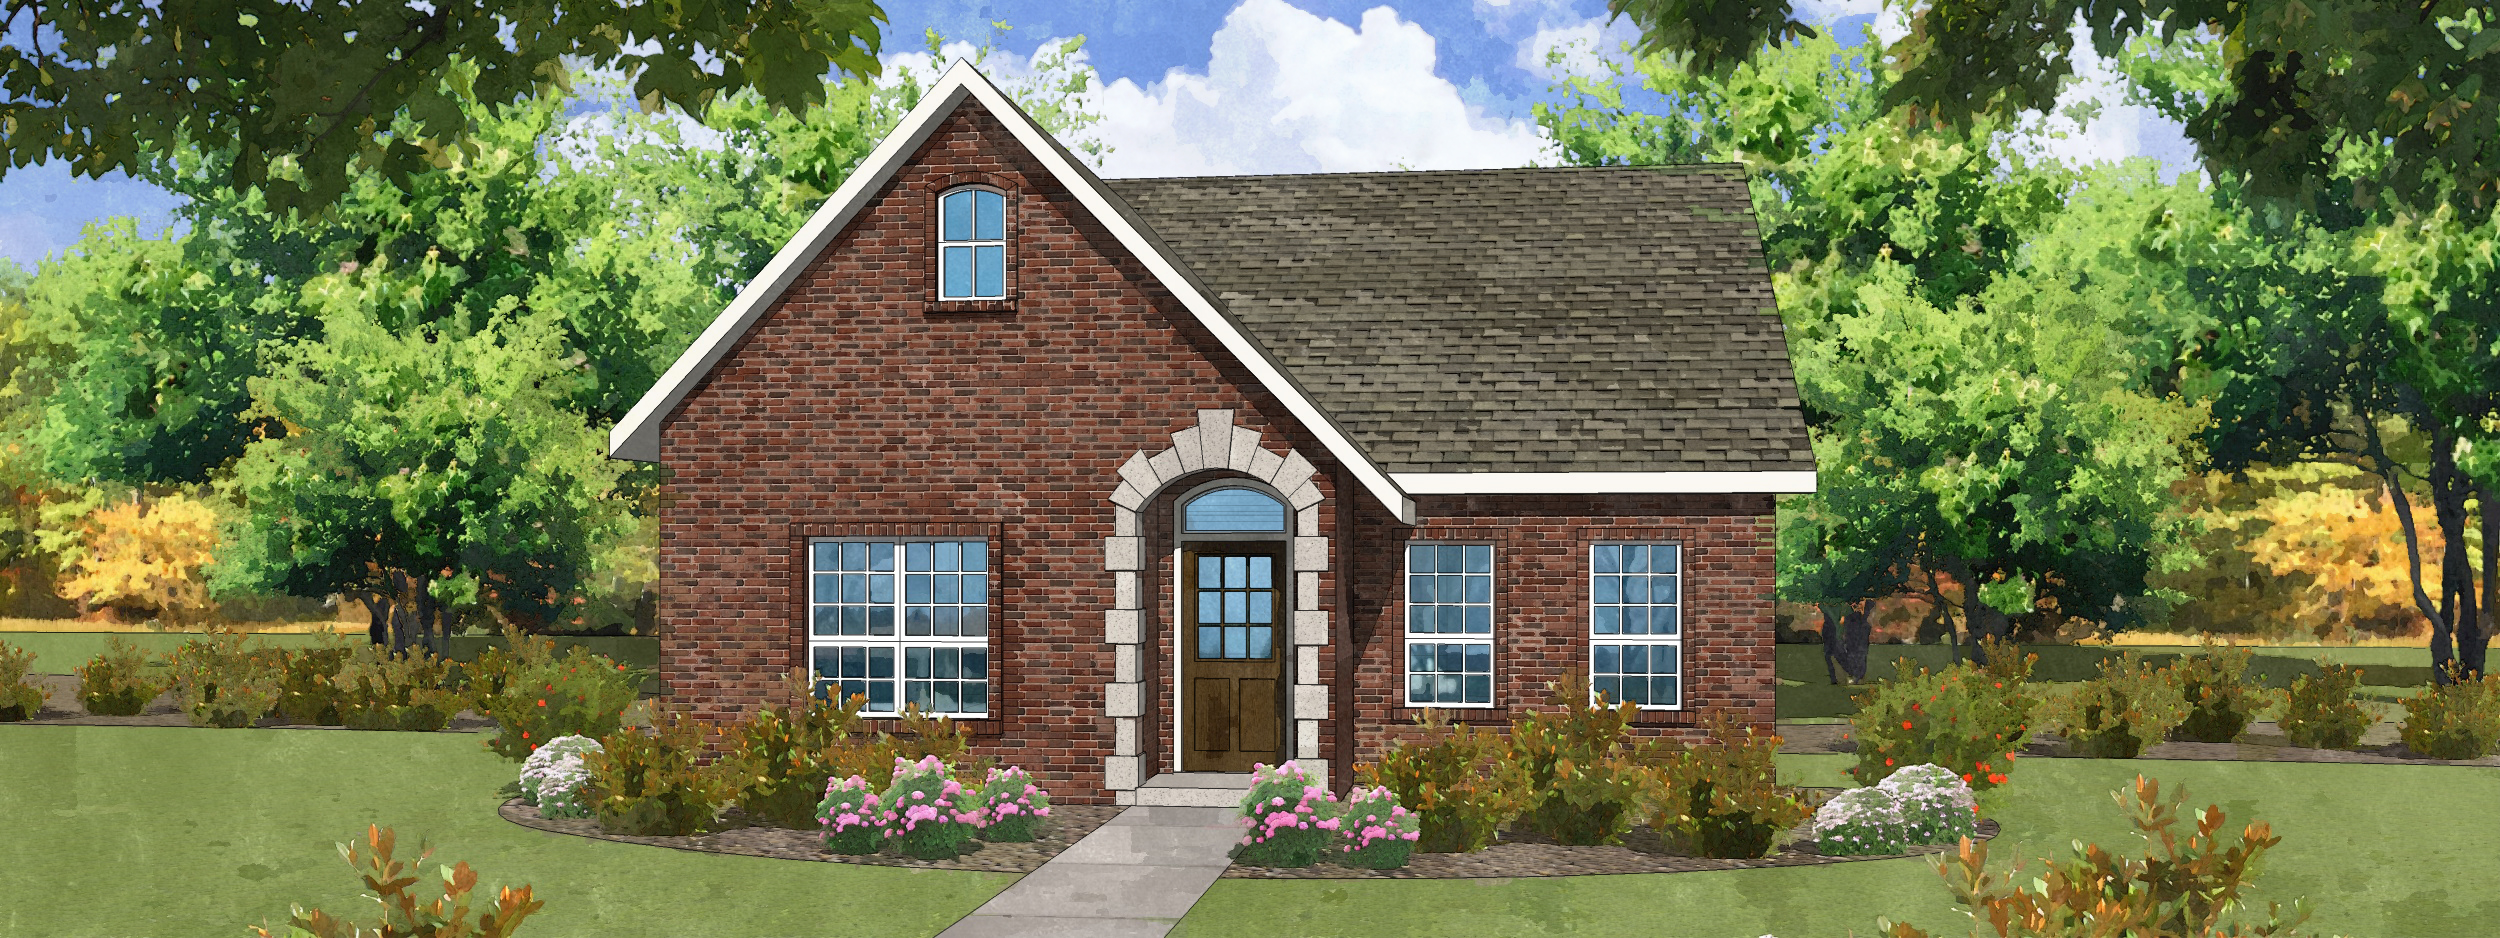 Tudor revival plan a with game room varsity villas of for Historic tudor house plans